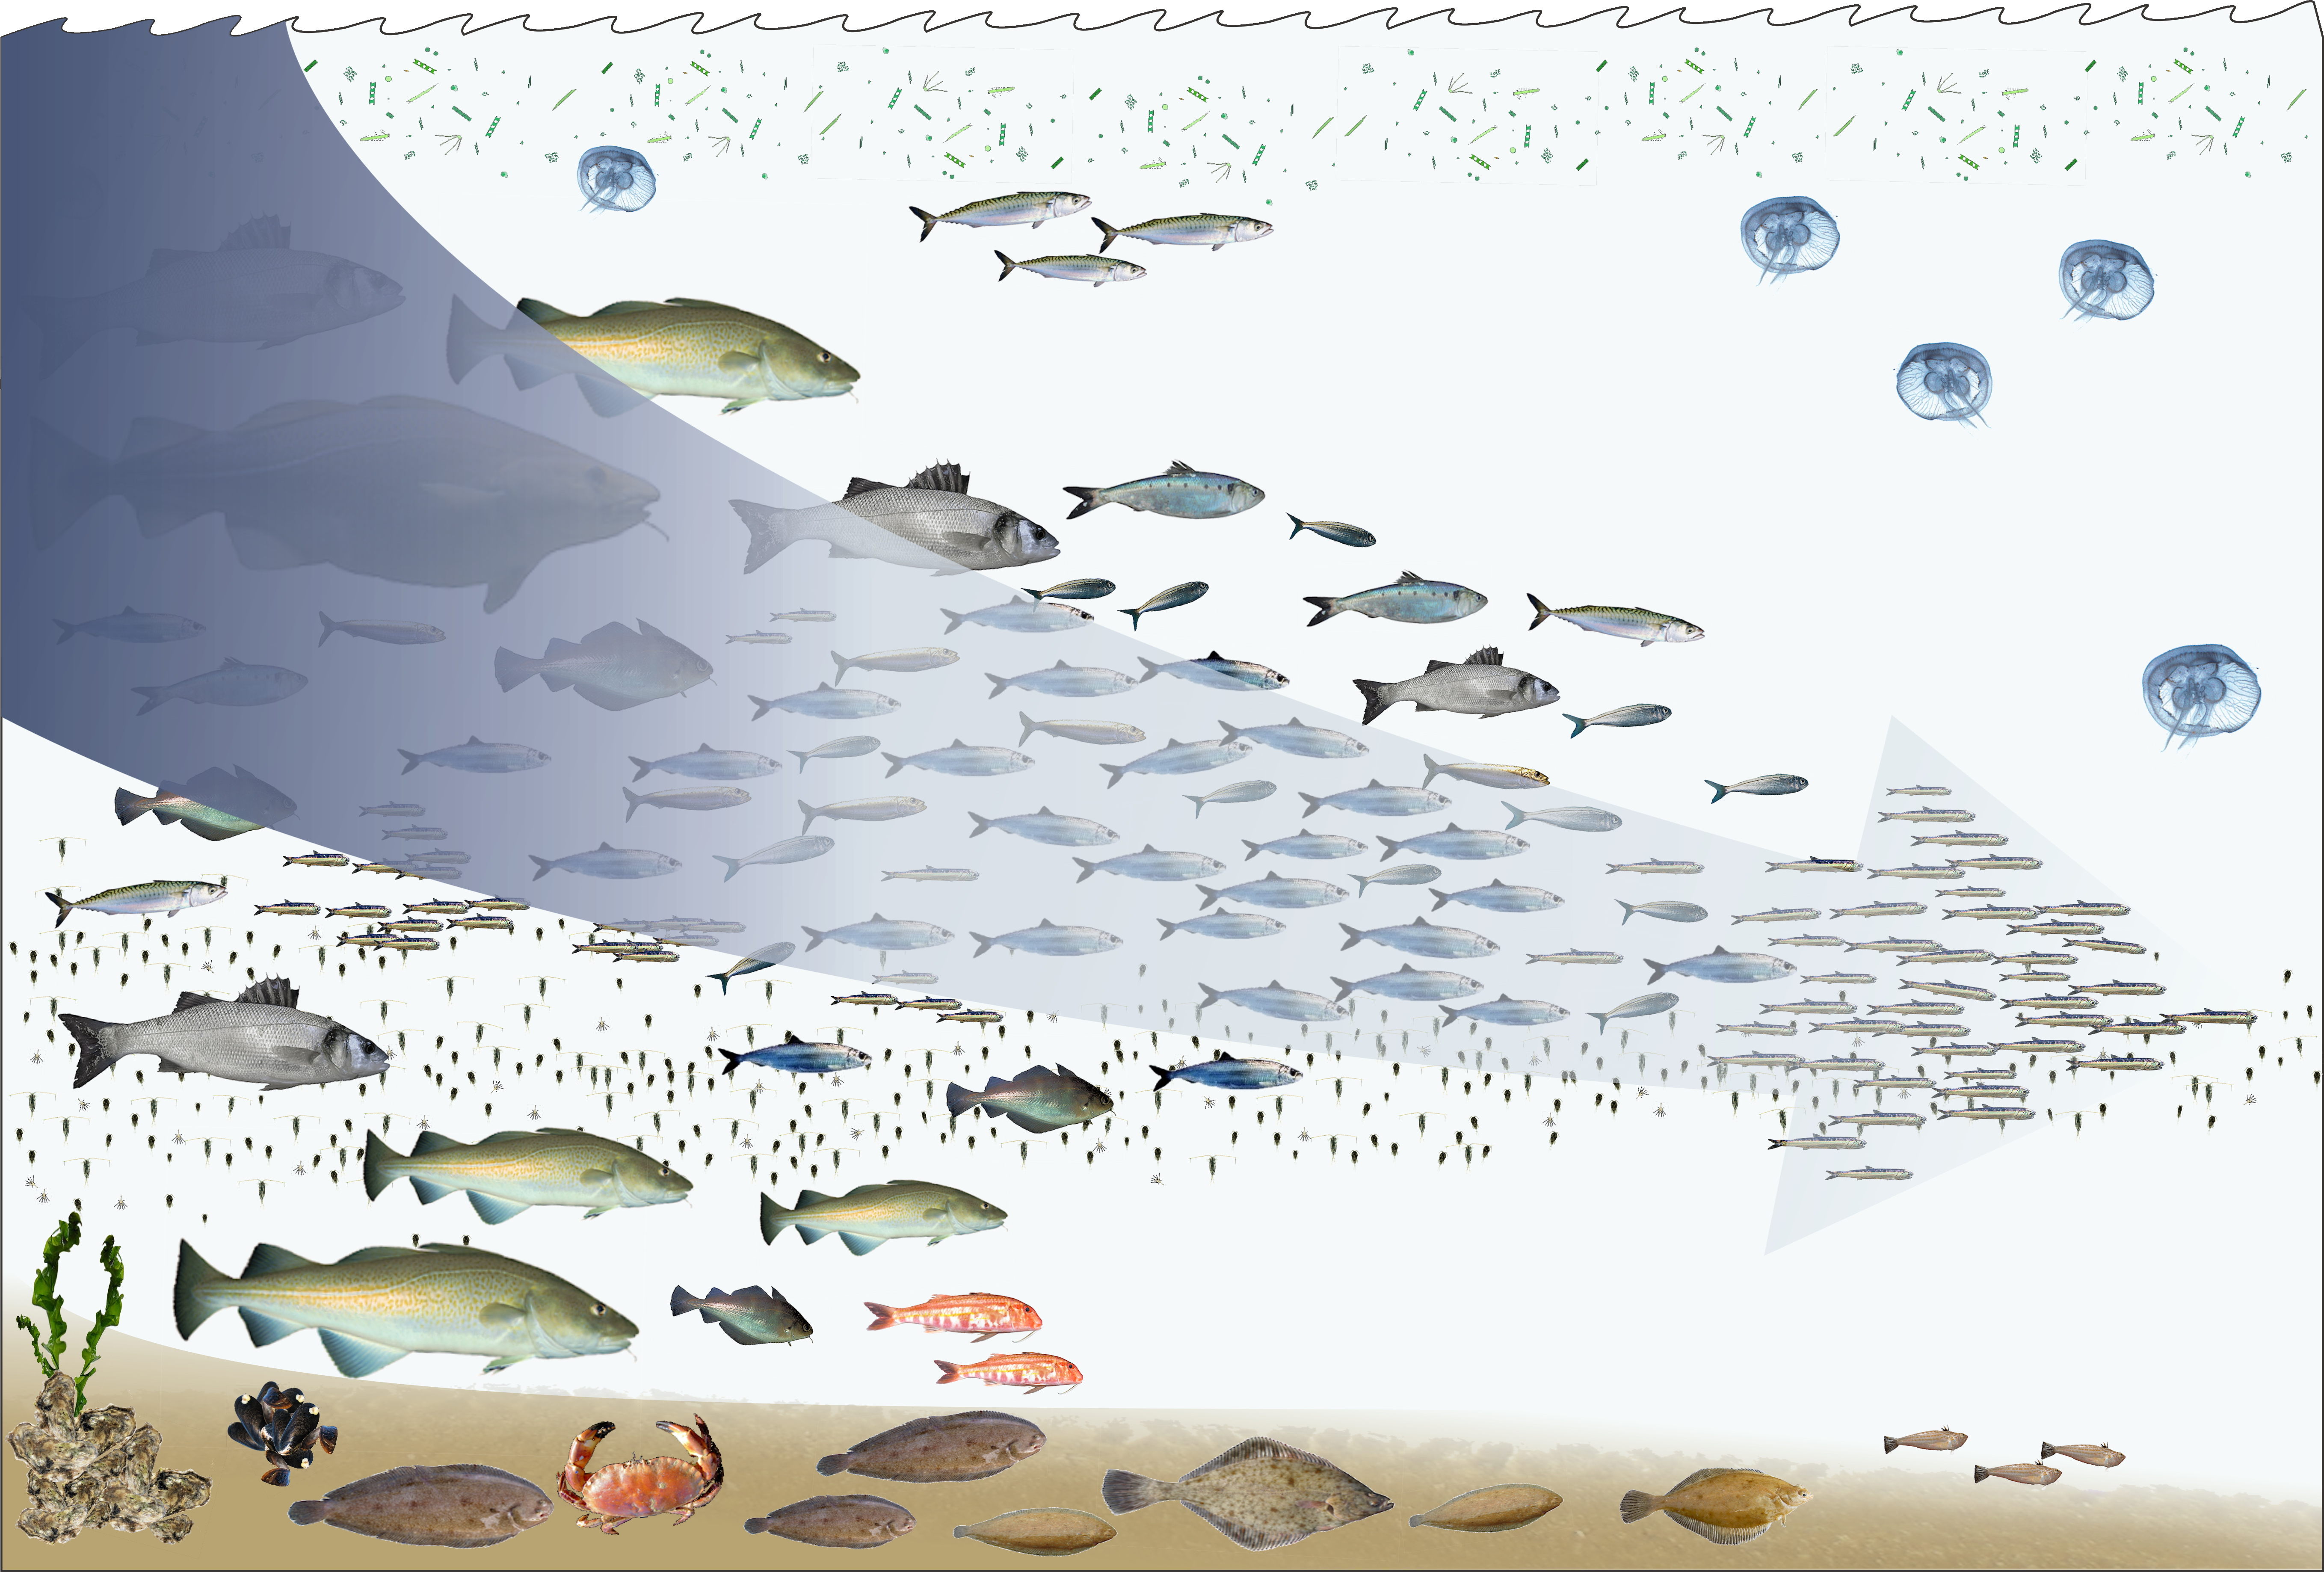 Environmental impact of fishing - Wikipedia